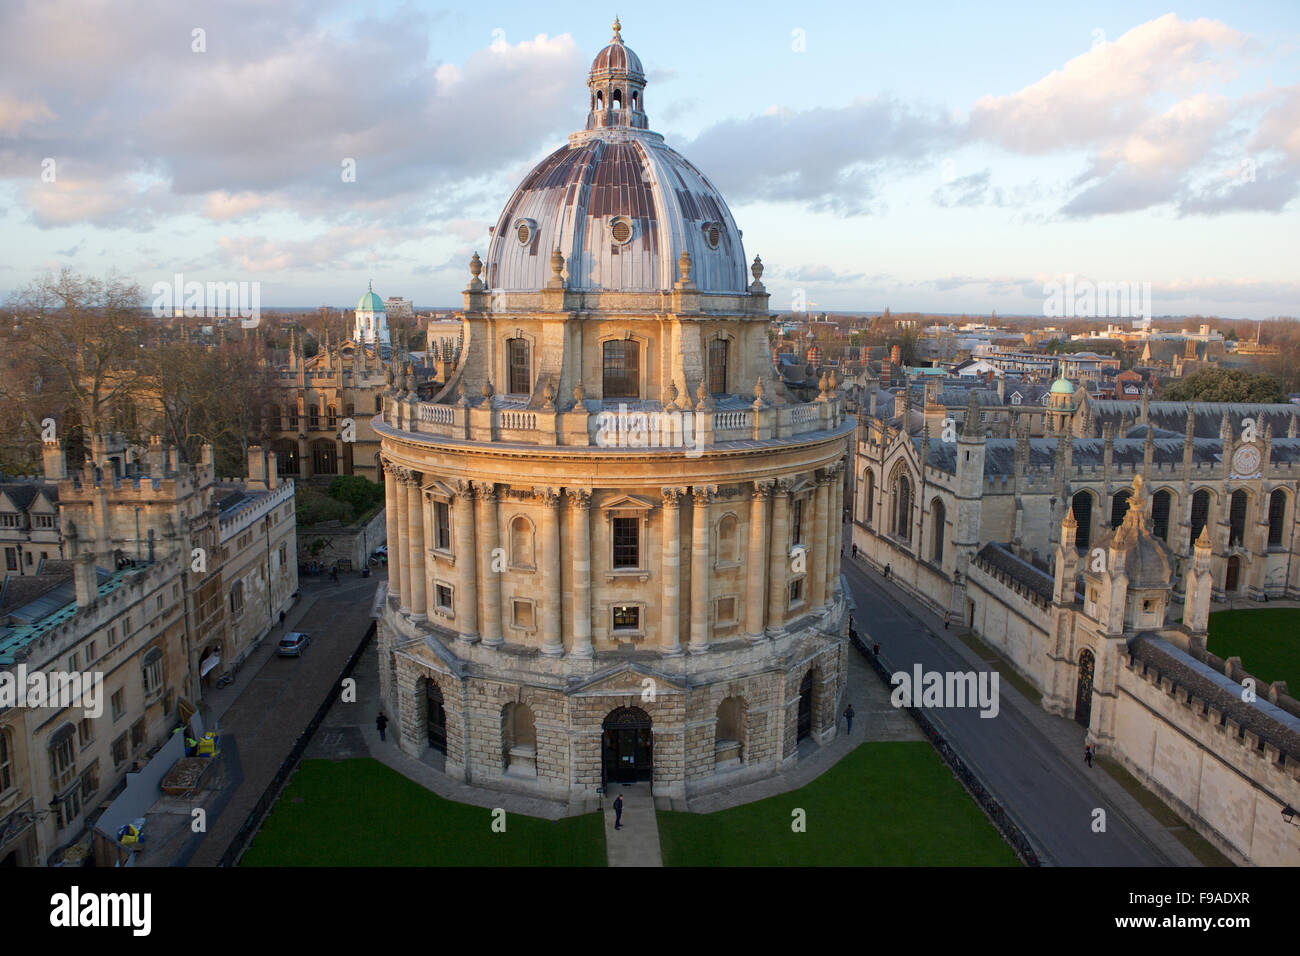 Radcliffe Camera in Oxford, part of the university - Stock Image